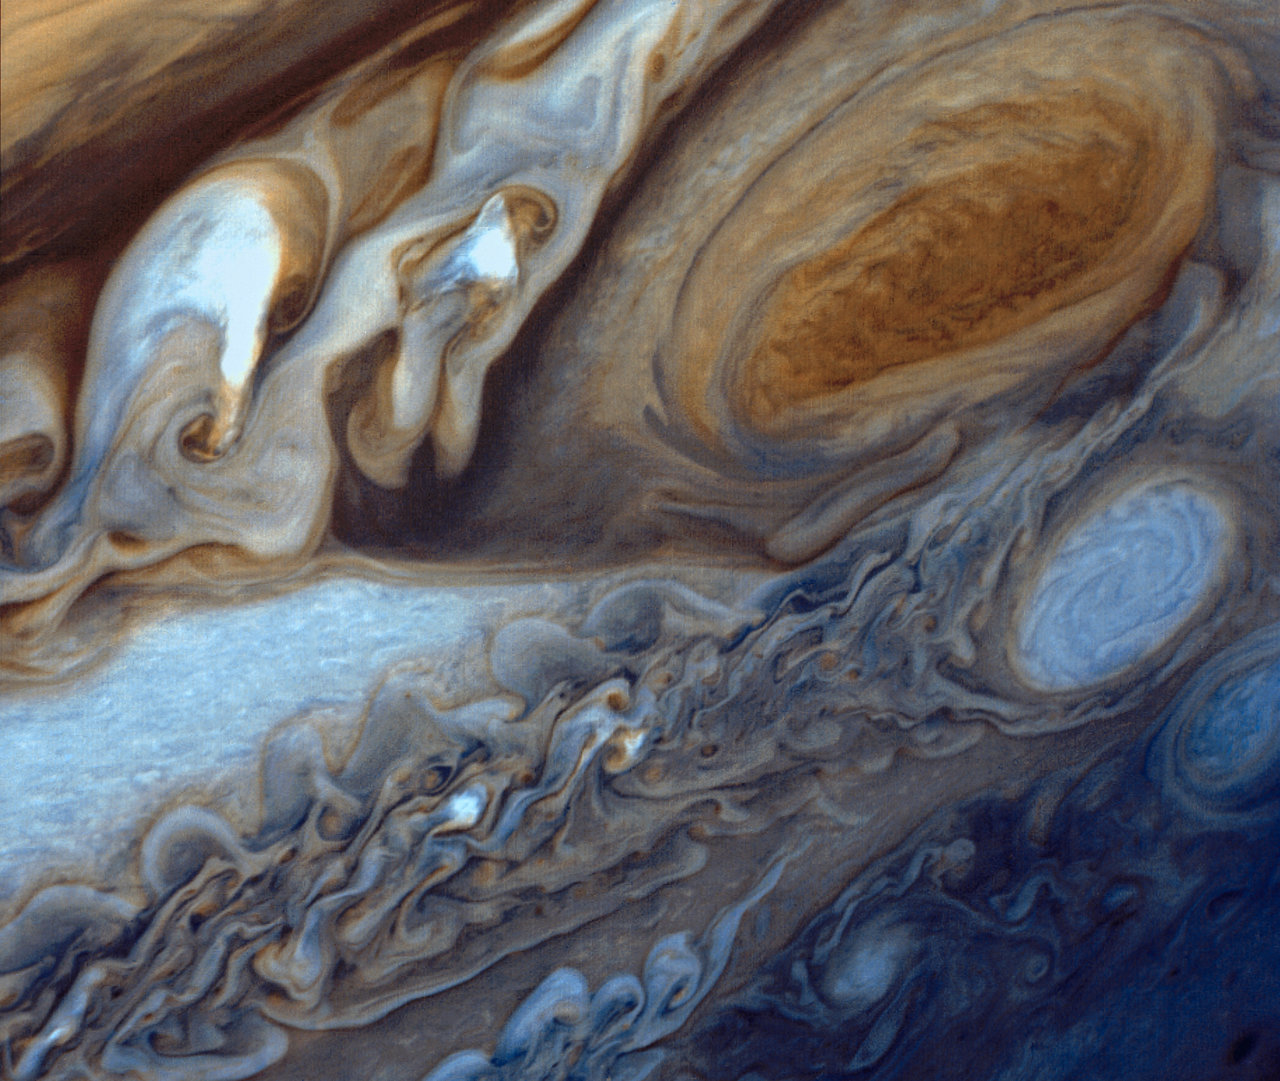 This close-up of swirling clouds around Jupiter's Great Red Spot was taken by Voyager 1. Credit: NASA/JPL.